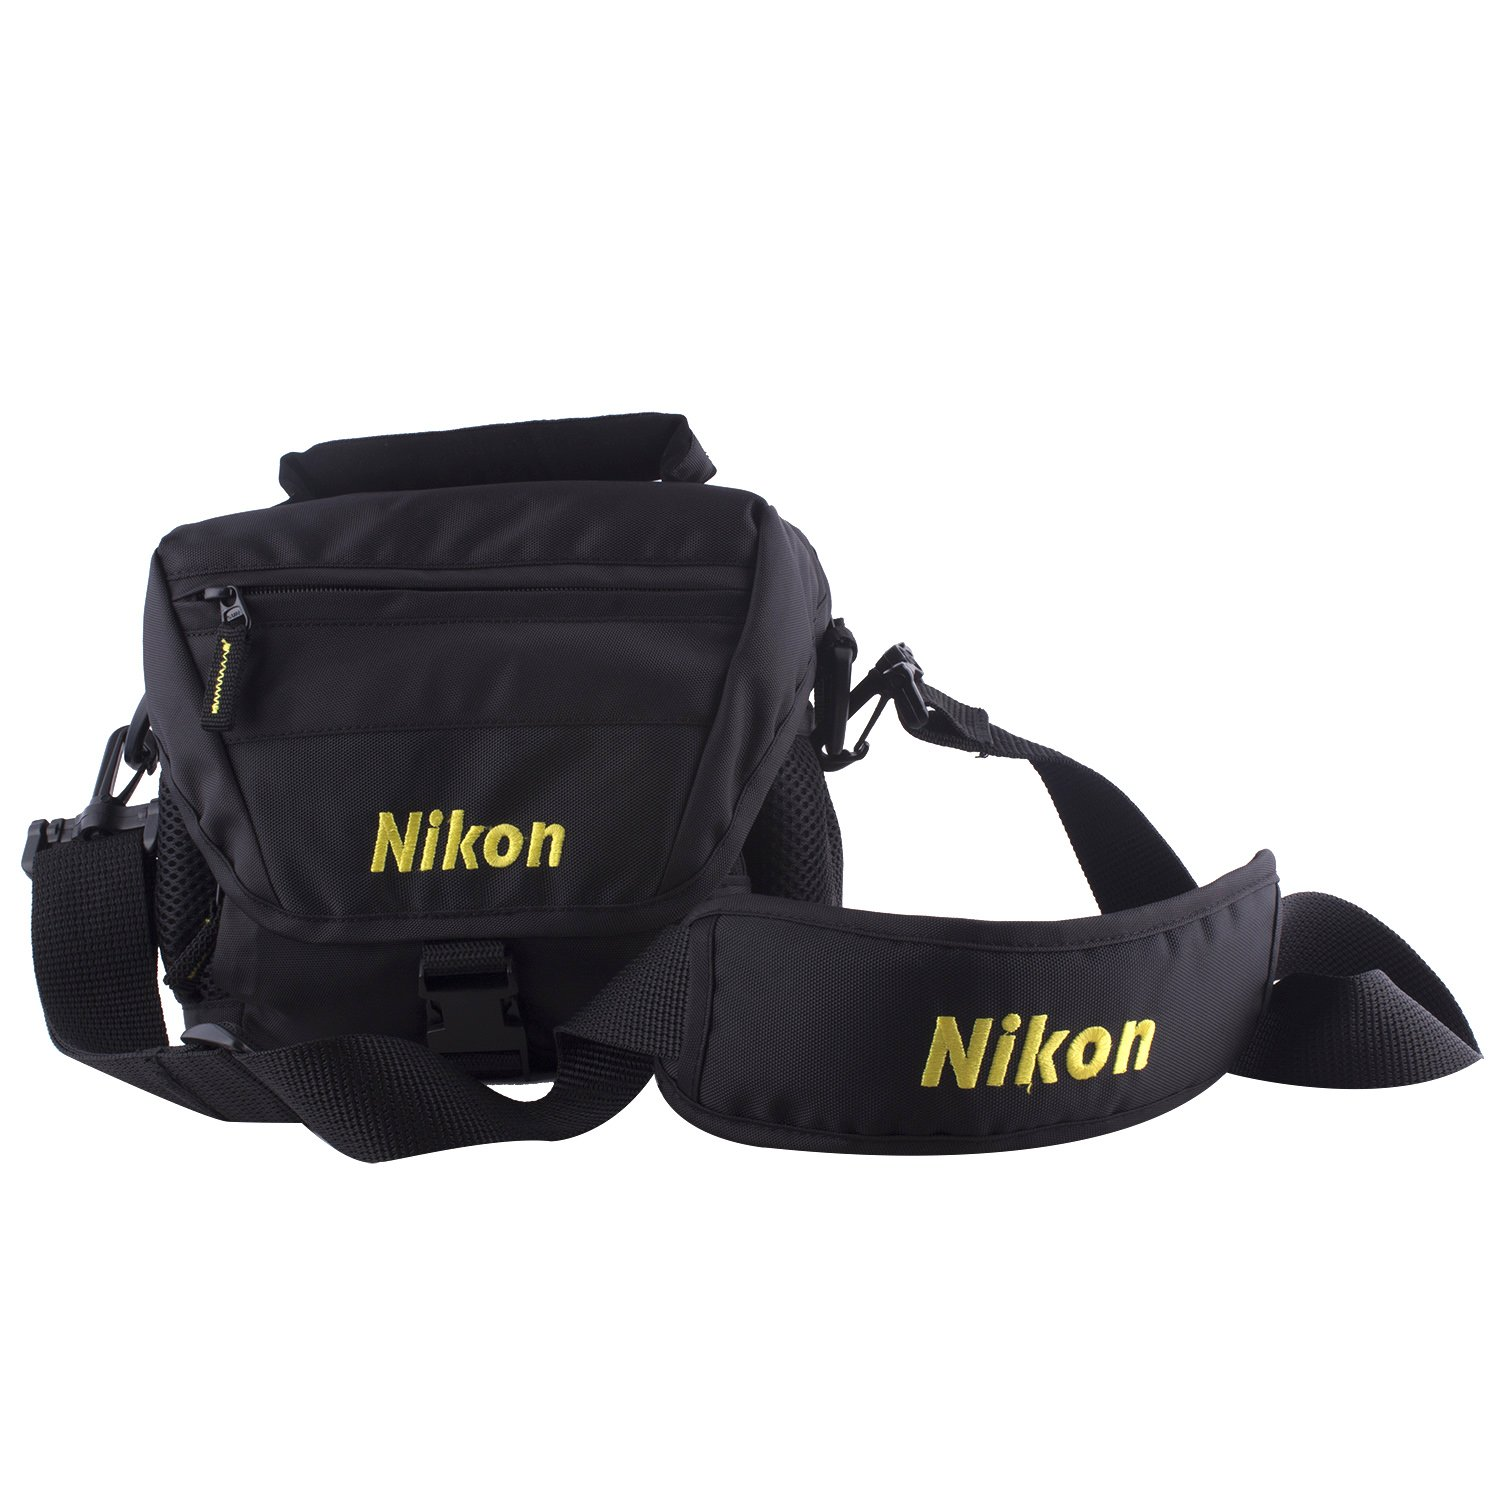 Camera Camera Dslr Bags cases bags for camera photo buy nikon dslr shoulder bag